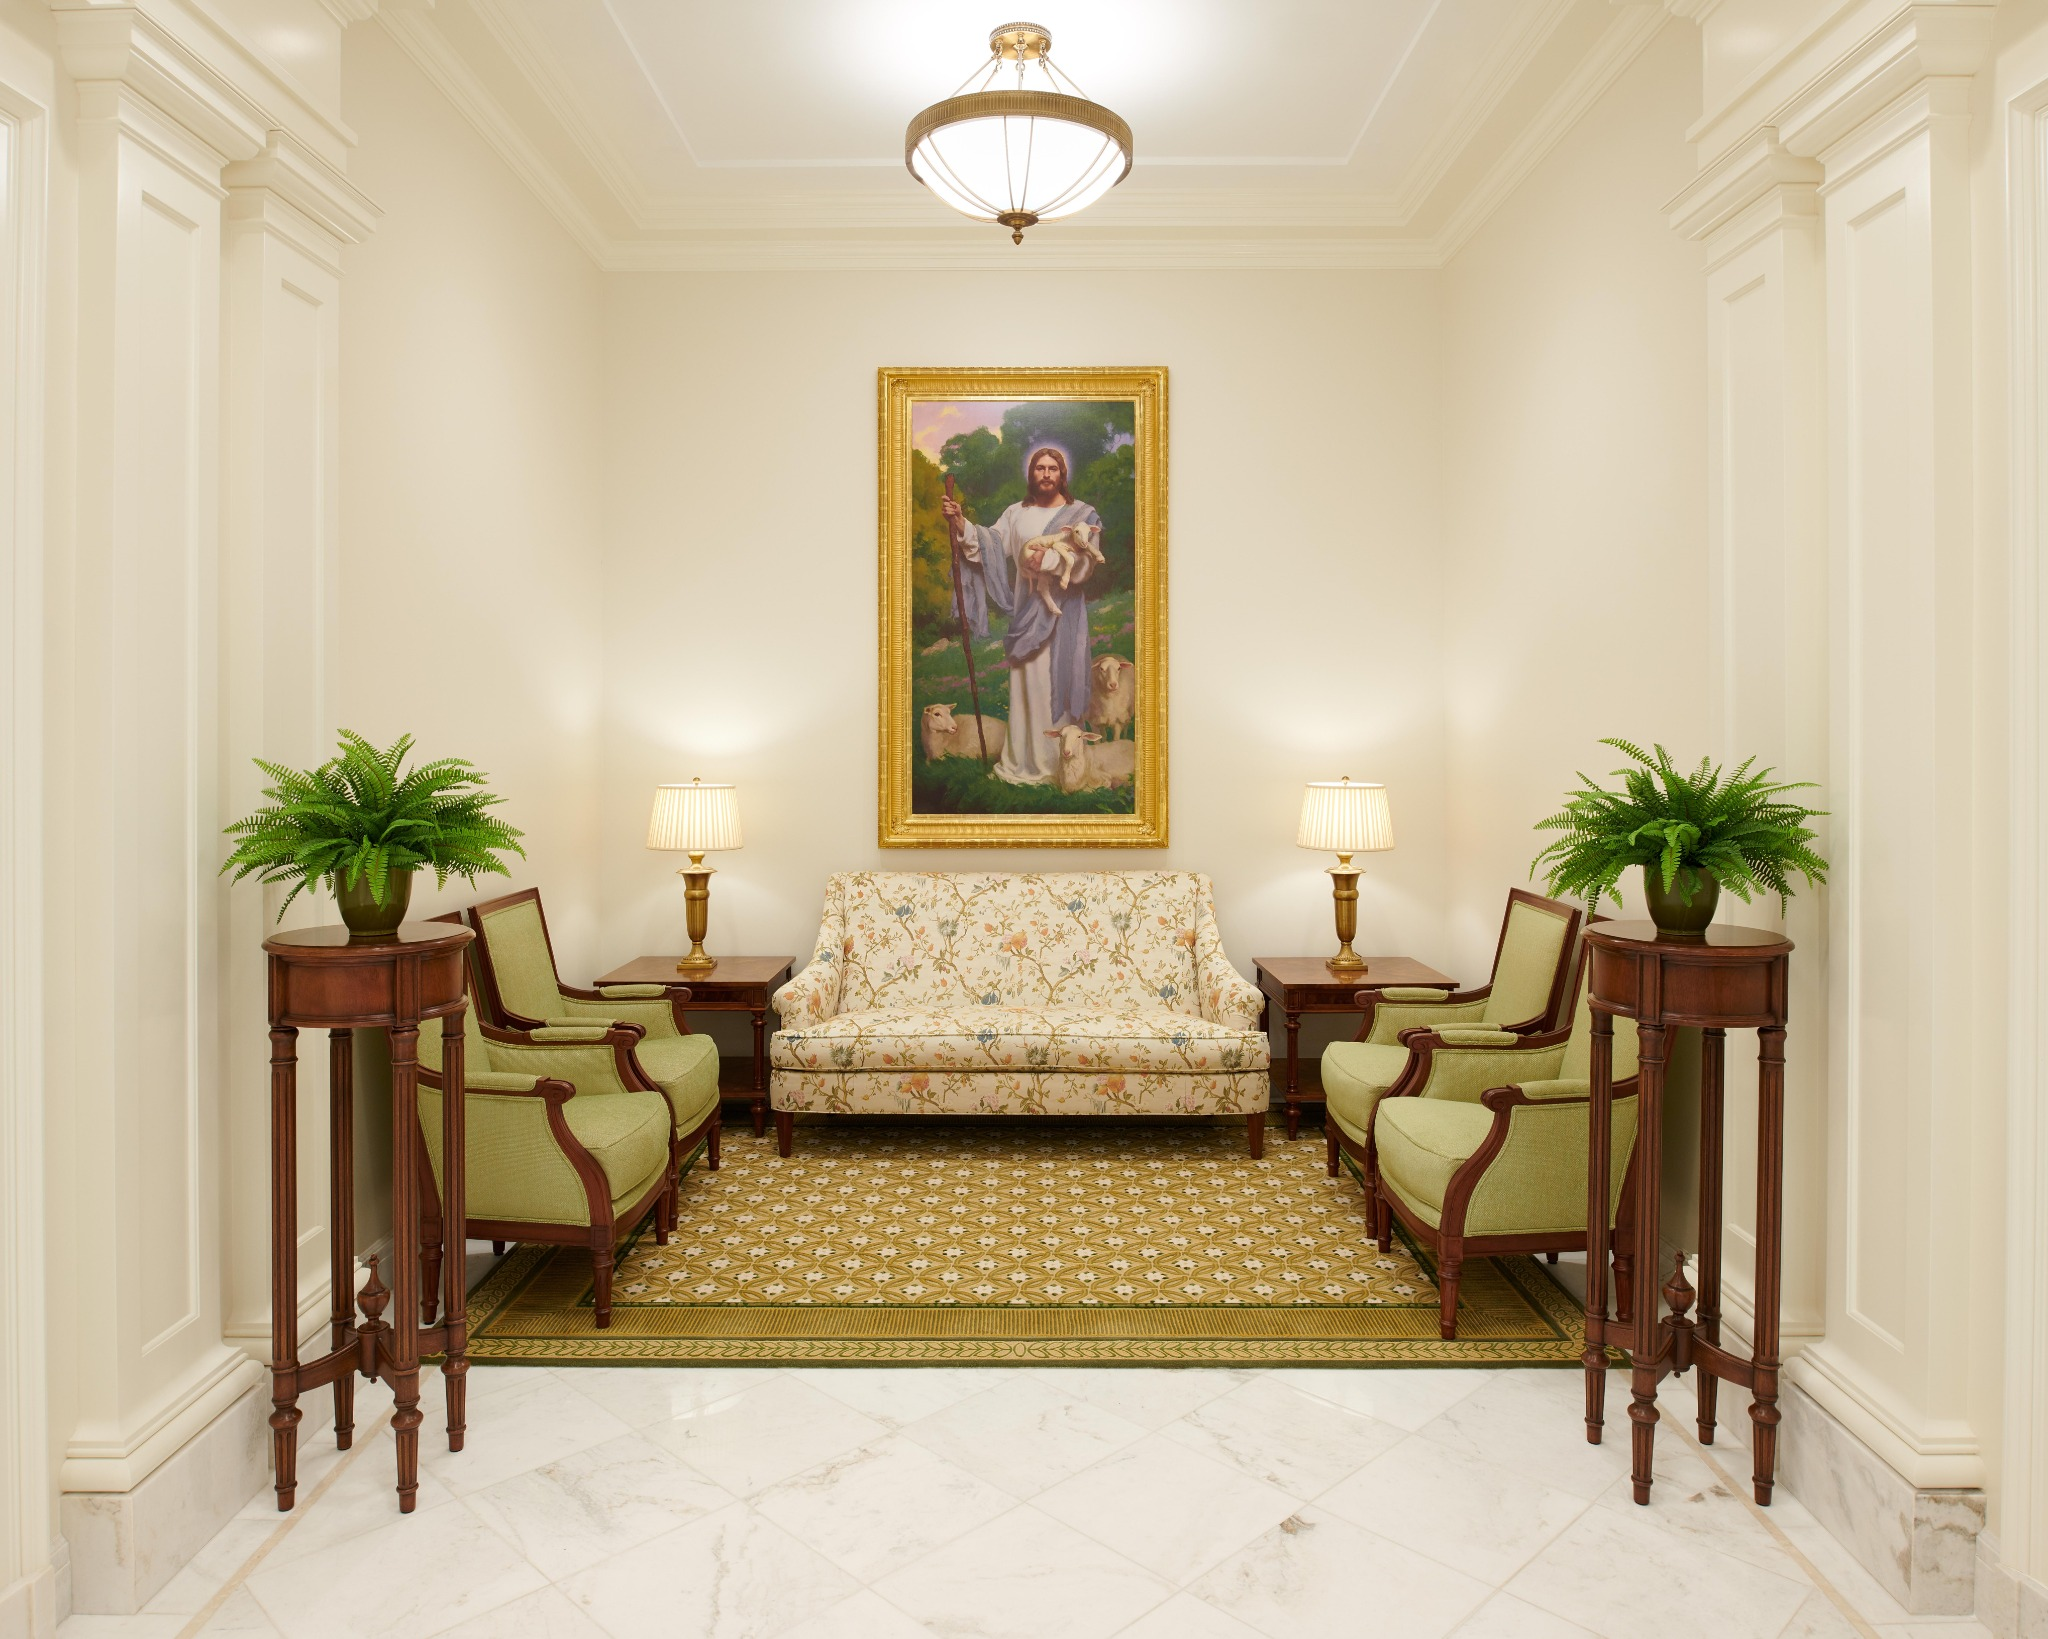 Paintings depicting Jesus Christ in various biblical settings are located throughout the Baton Rouge Louisiana Temple.